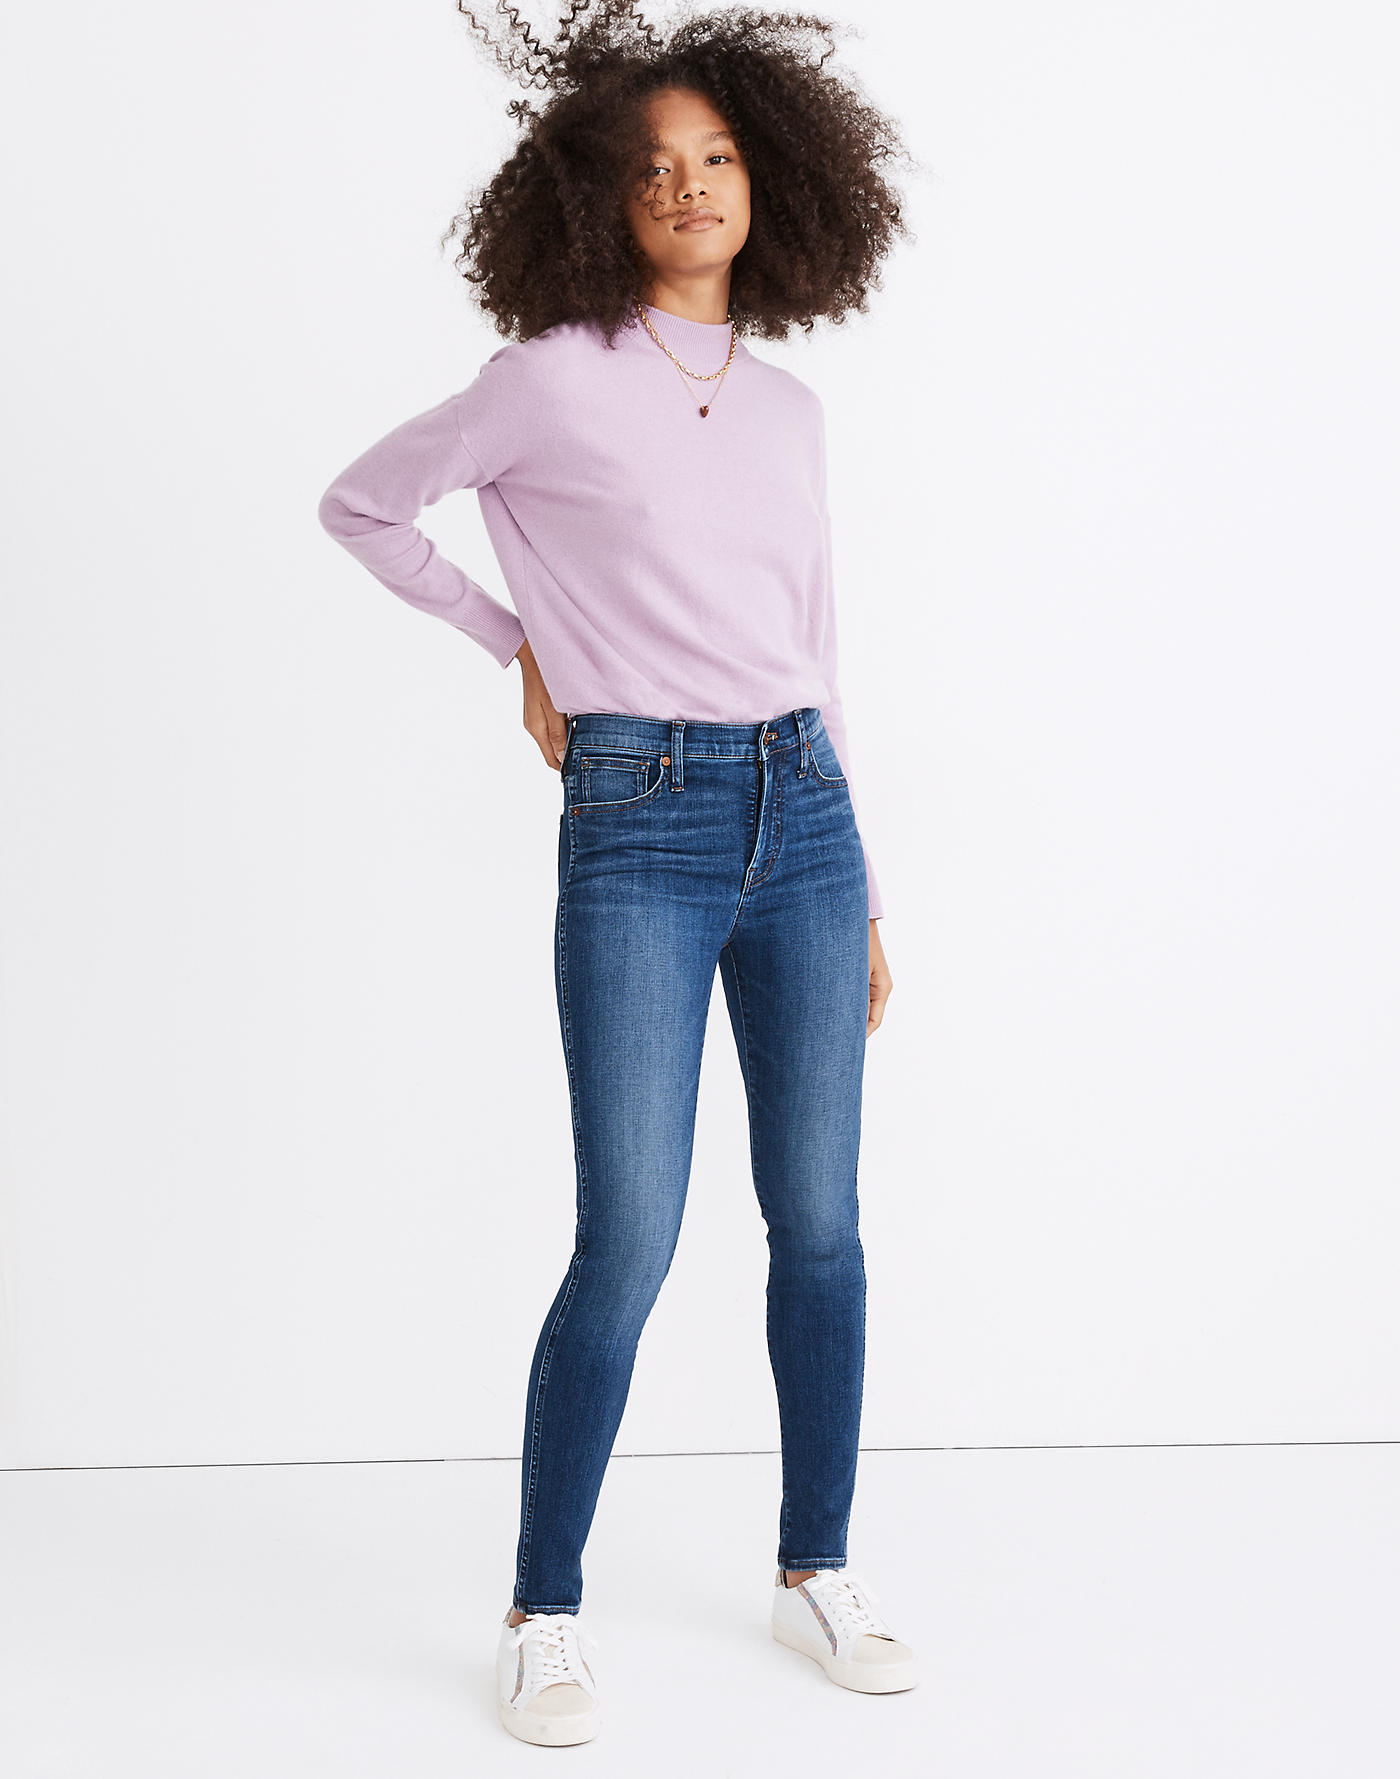 Madewell 10 High-Rise Skinny Jeans in Bradshaw Wash